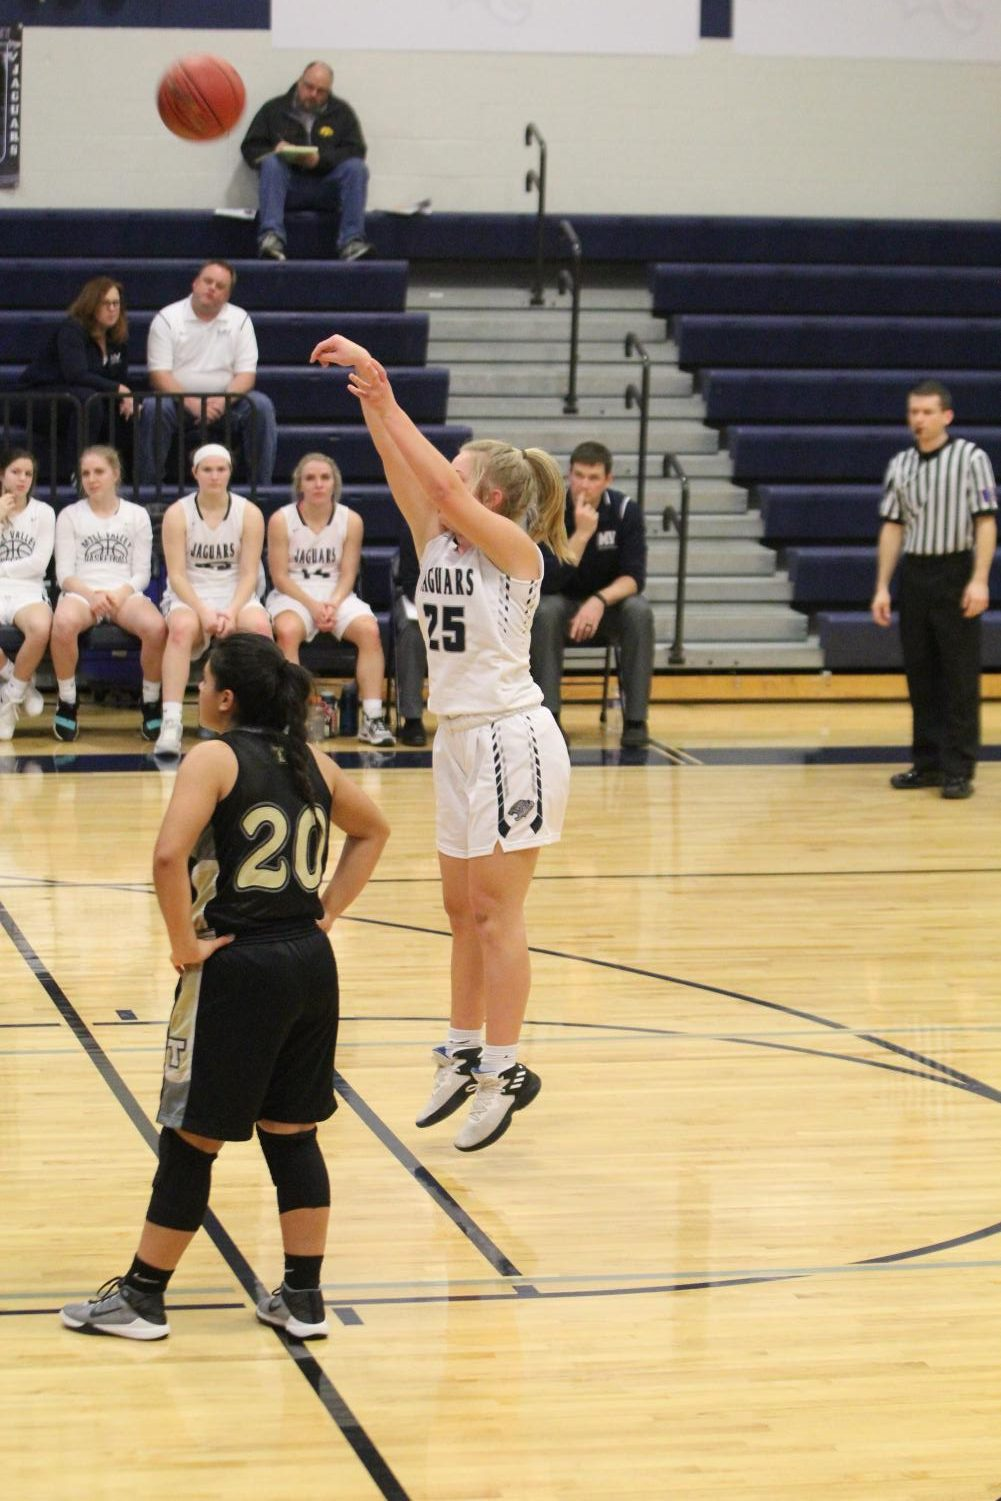 In+position%2C+senior+Peyton+Shurley+shoots+for+a+free+throw.